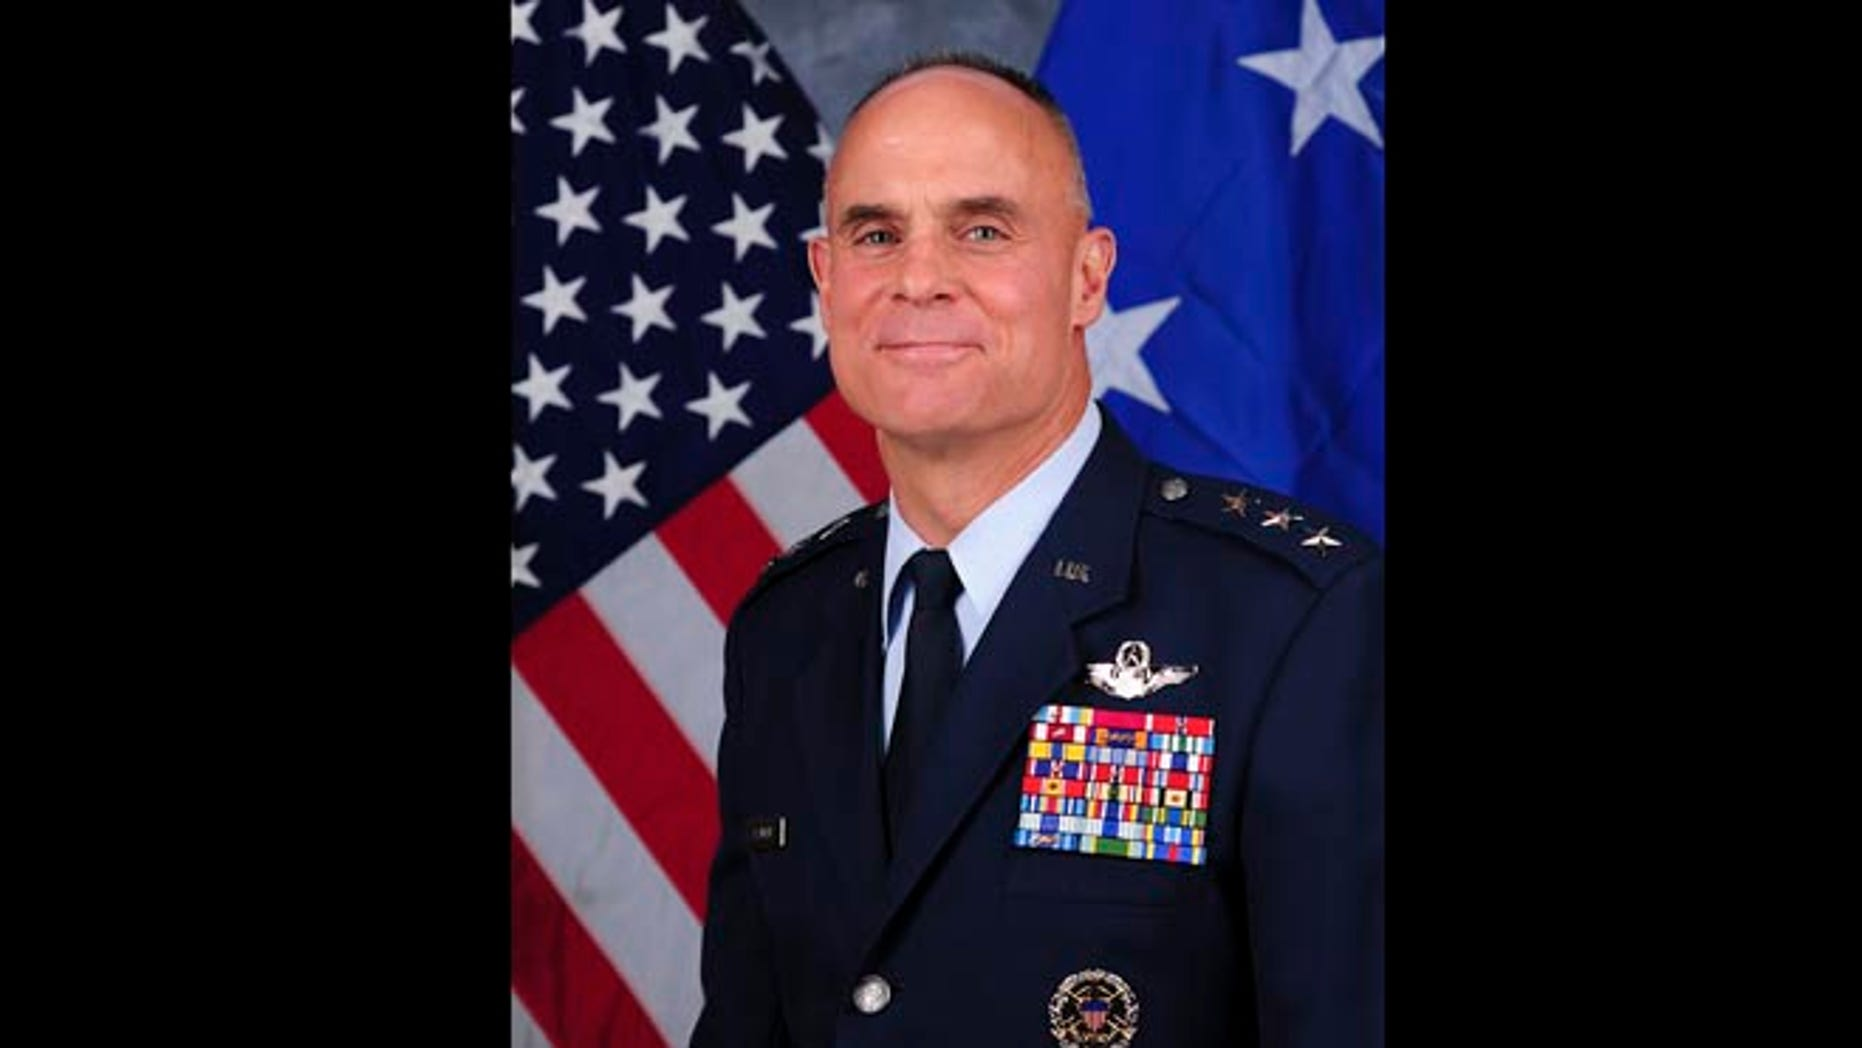 This undated file photo provided by the U.S. Air Force shows Lt. Gen. Craig Franklin, who overturned the sexual assault conviction of Lt. Col. James Wilkerson. The Air Forces decision to transfer Wilkerson to a Tucson military base has outraged the family of Kimberly Hanks, the woman who made the allegations, adding to the growing criticism of the military justice system.